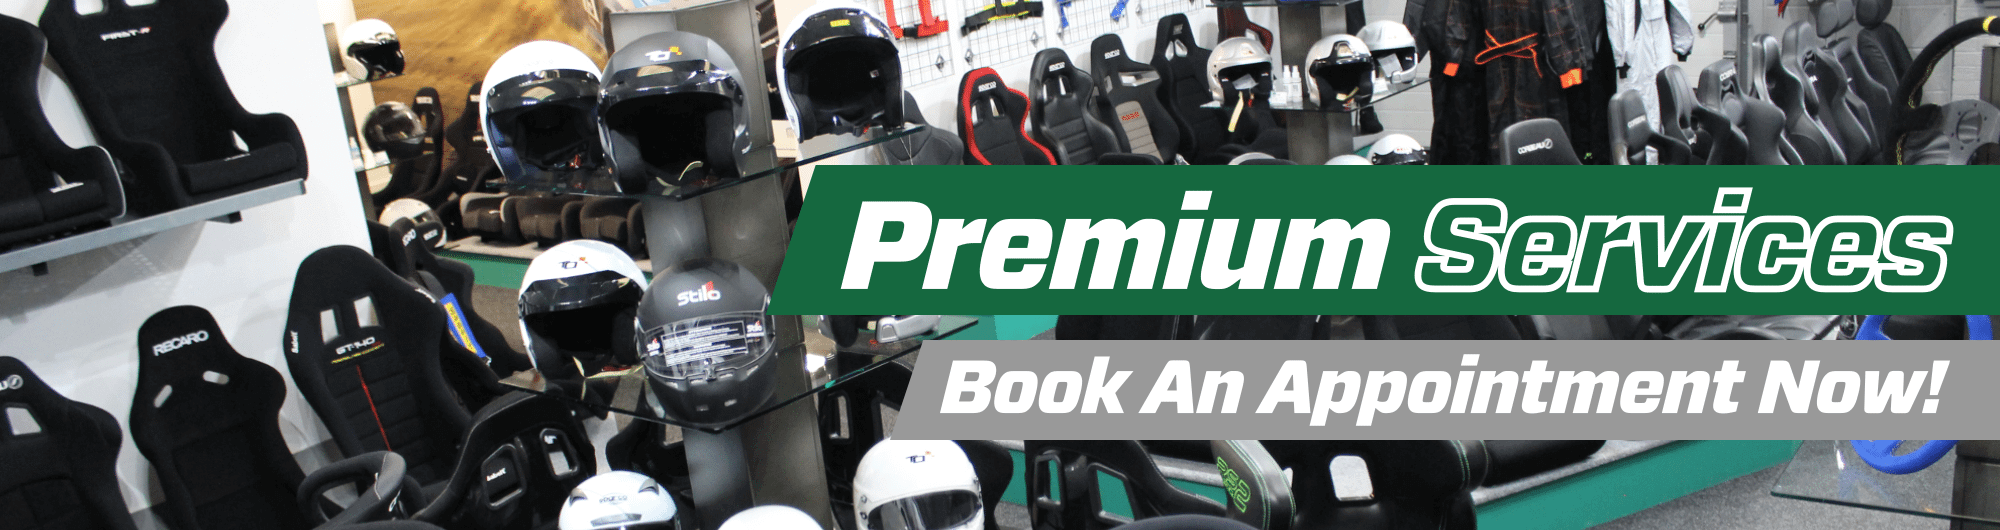 Premium Services – Book An Appointment Now – www.gsmotorsport.co.uk Hero Image – October 2017